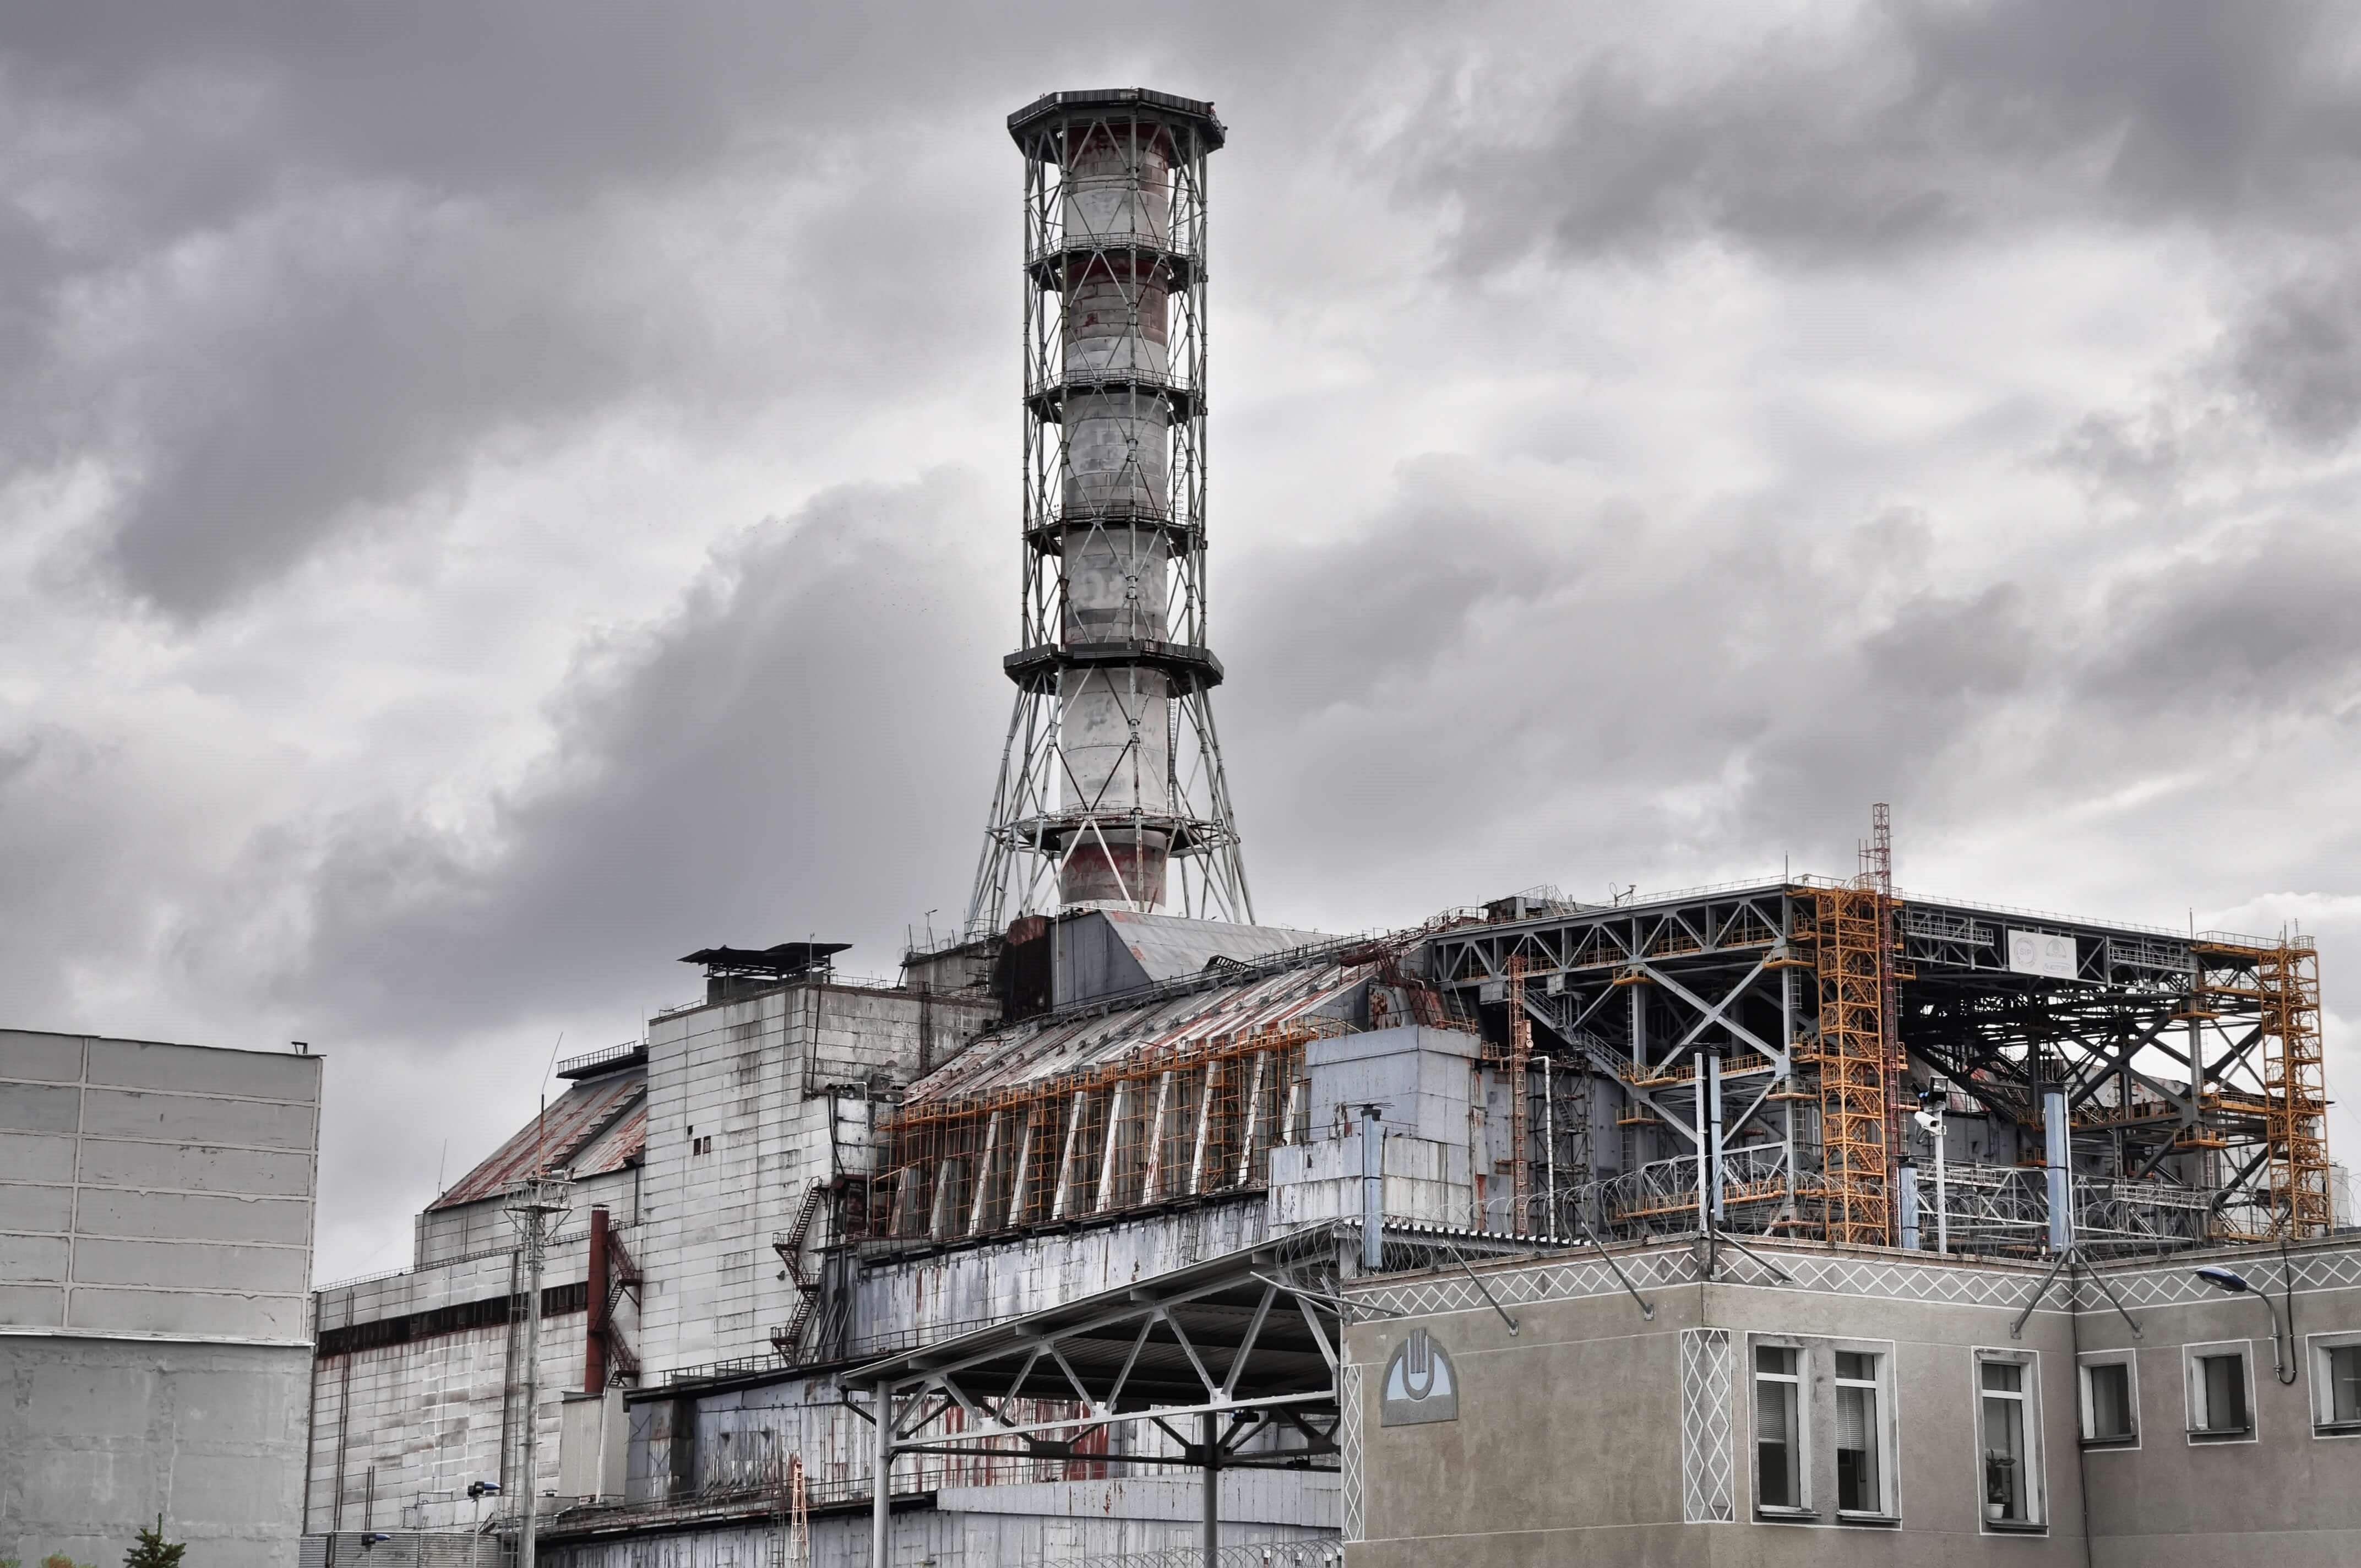 an overview of the lasting nuclear power problems and chernobyl